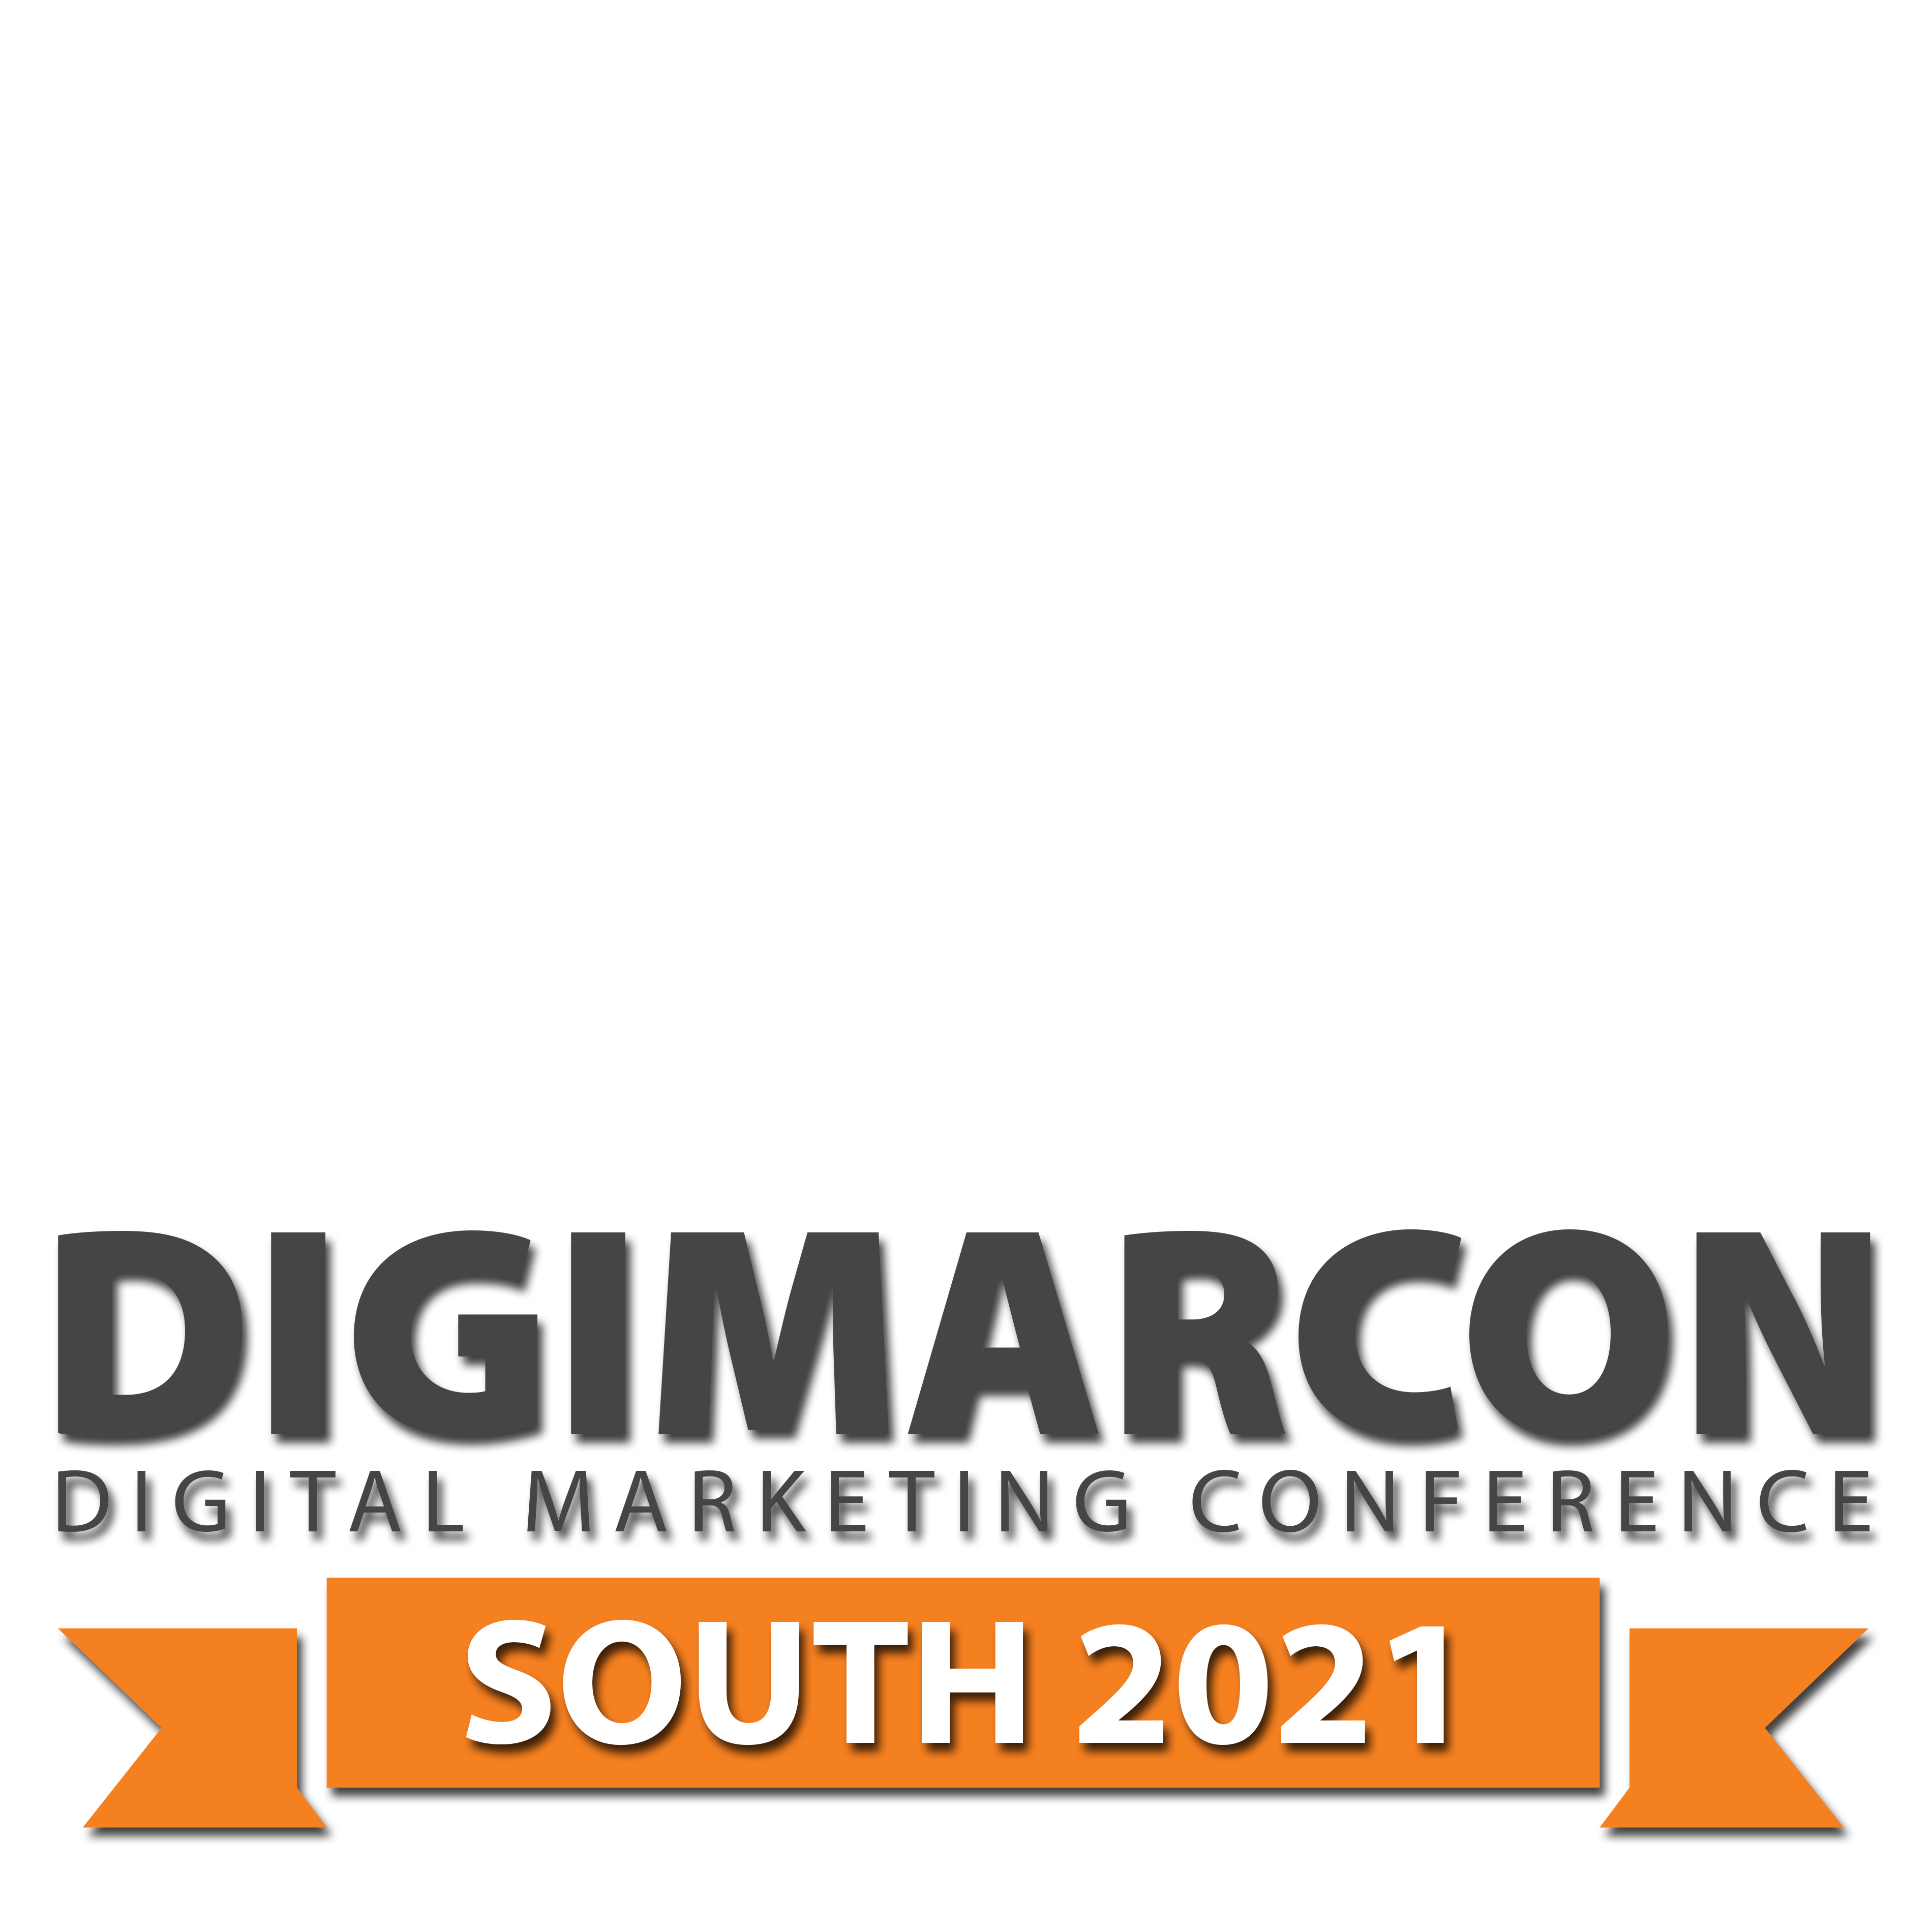 DigiMarCon Las Vegas 2022 – Digital Marketing Conference & Exhibition